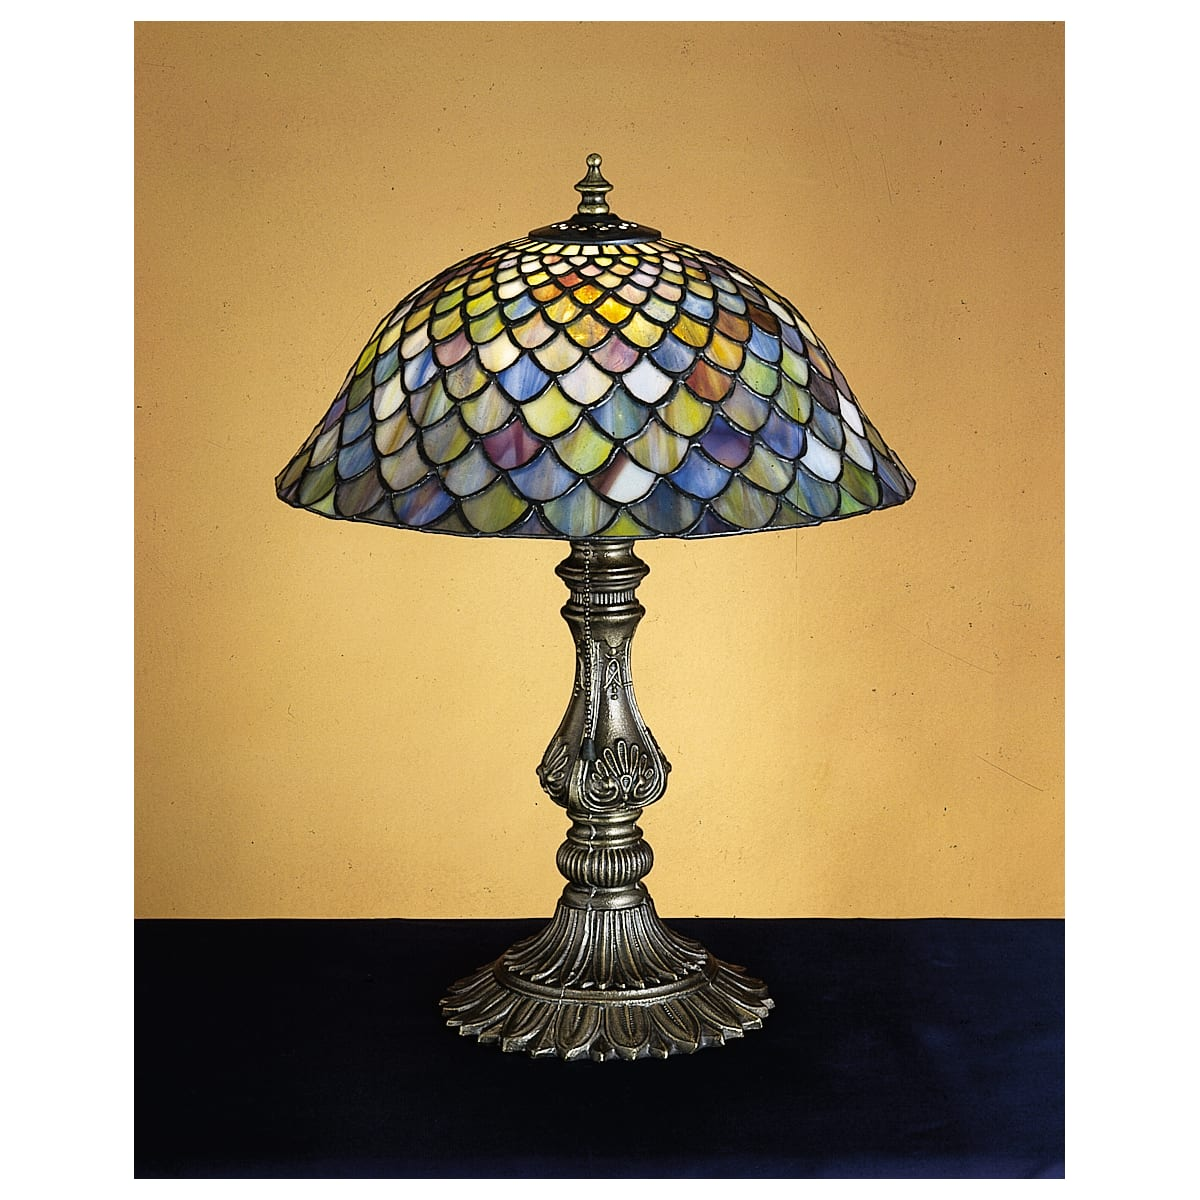 Meyda Tiffany 26673 Tiffany Glass Stained Glass Tiffany Accent Table Lamp From The Tiffany Fishscale Collection Lightingdirect Com